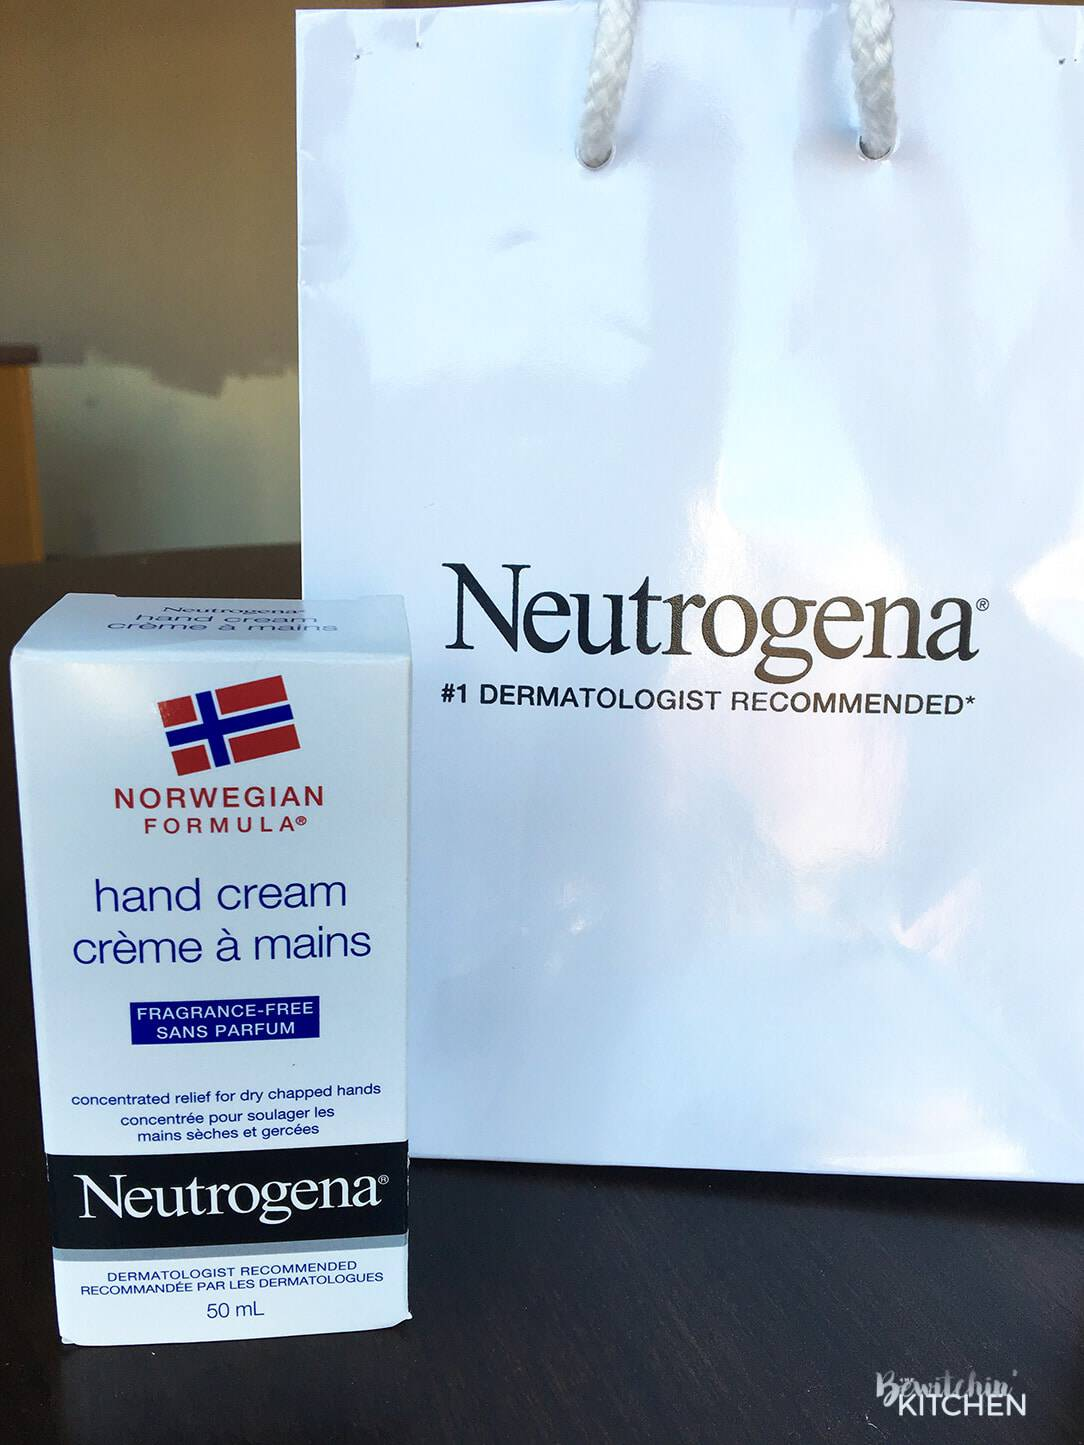 Neutrogena Norwegian Formula Hand Cream | TBK